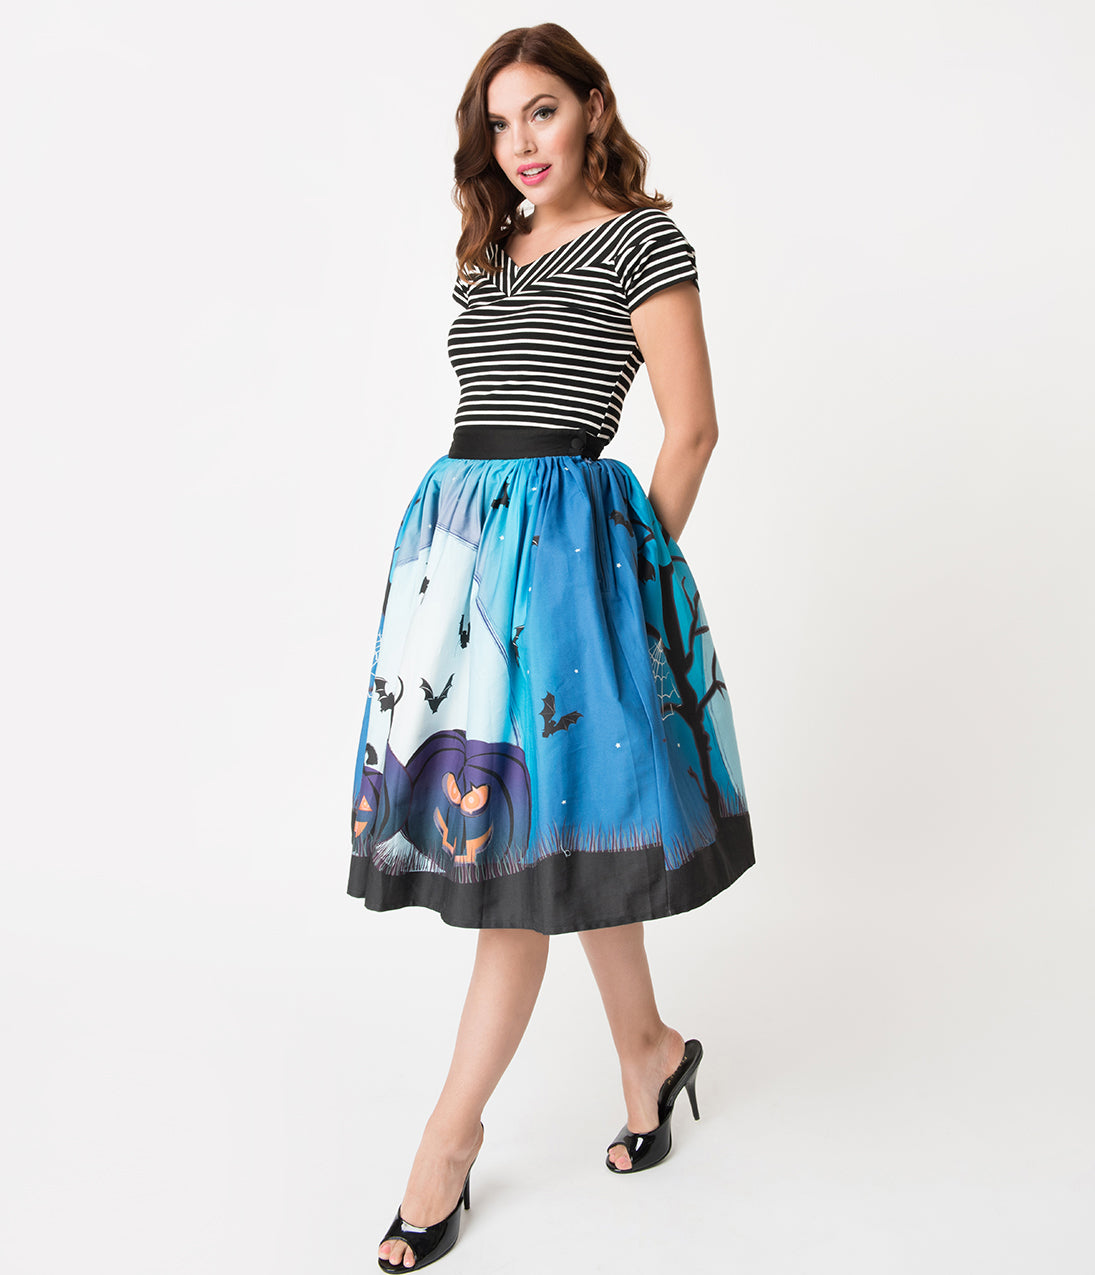 1950s Swing Skirt, Poodle Skirt, Pencil Skirts Unique Vintage 1950S Style Blue Moon  Pumpkins Print High Waist Circle Swing Skirt $59.00 AT vintagedancer.com